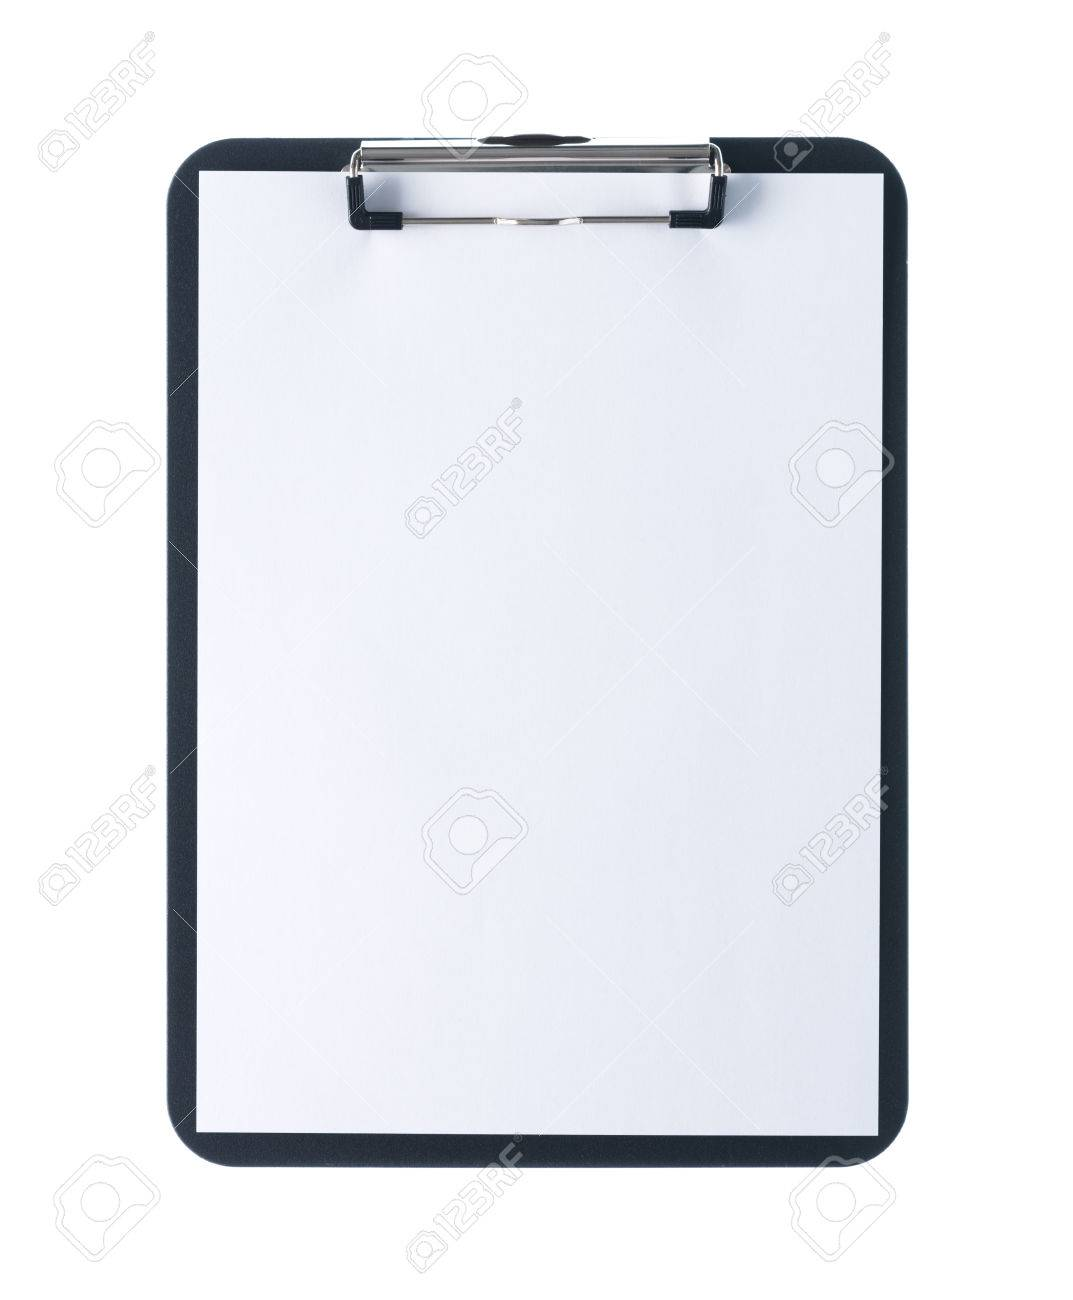 Black clipboard with blank white sheet attached on white background Stock Photo - 50113864